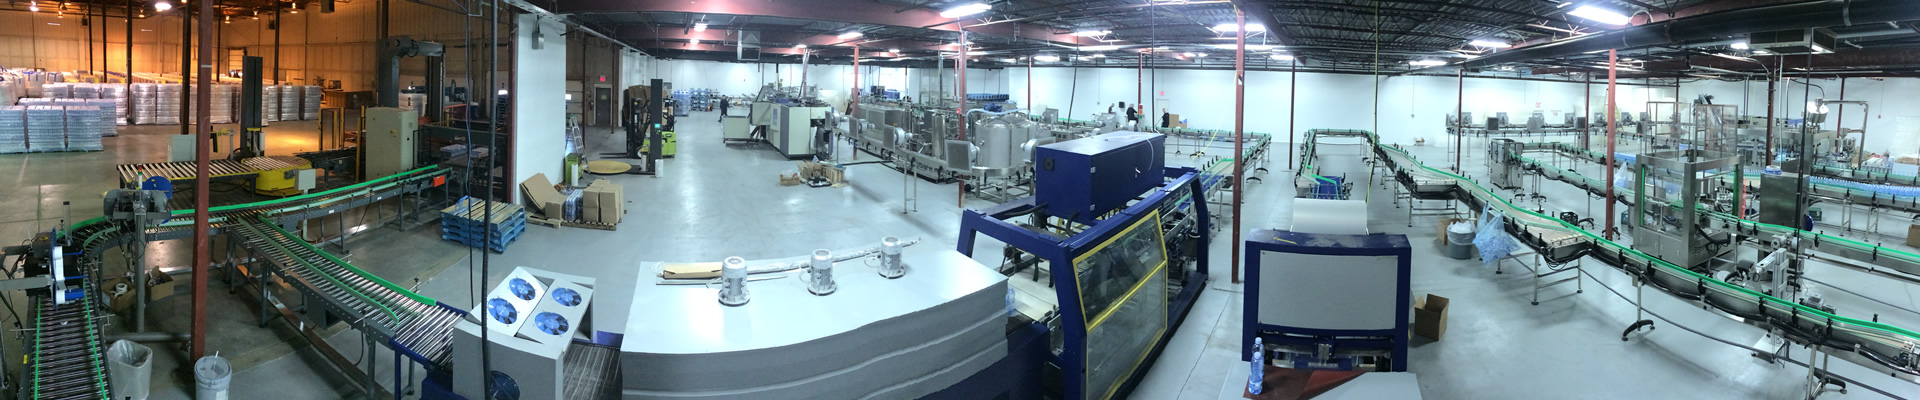 AUtomatic drinking Pasteurization System-J&D WATER